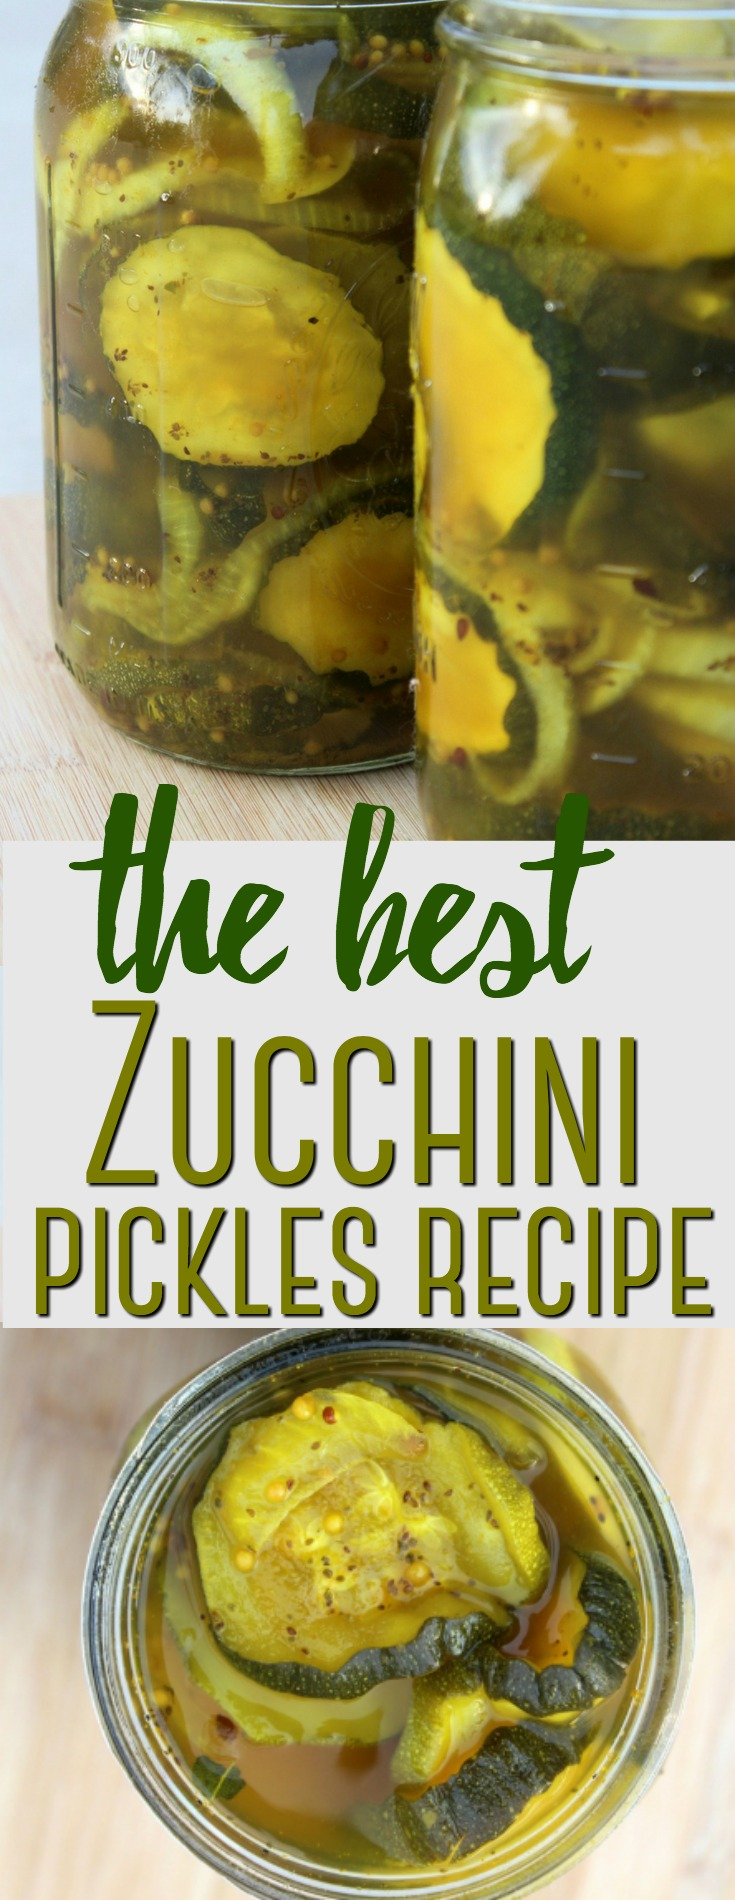 These zucchini pickles are a fun and unique way to use up a bumper crop of zucchini in a delicious recipe that features turmeric in a simple brine.